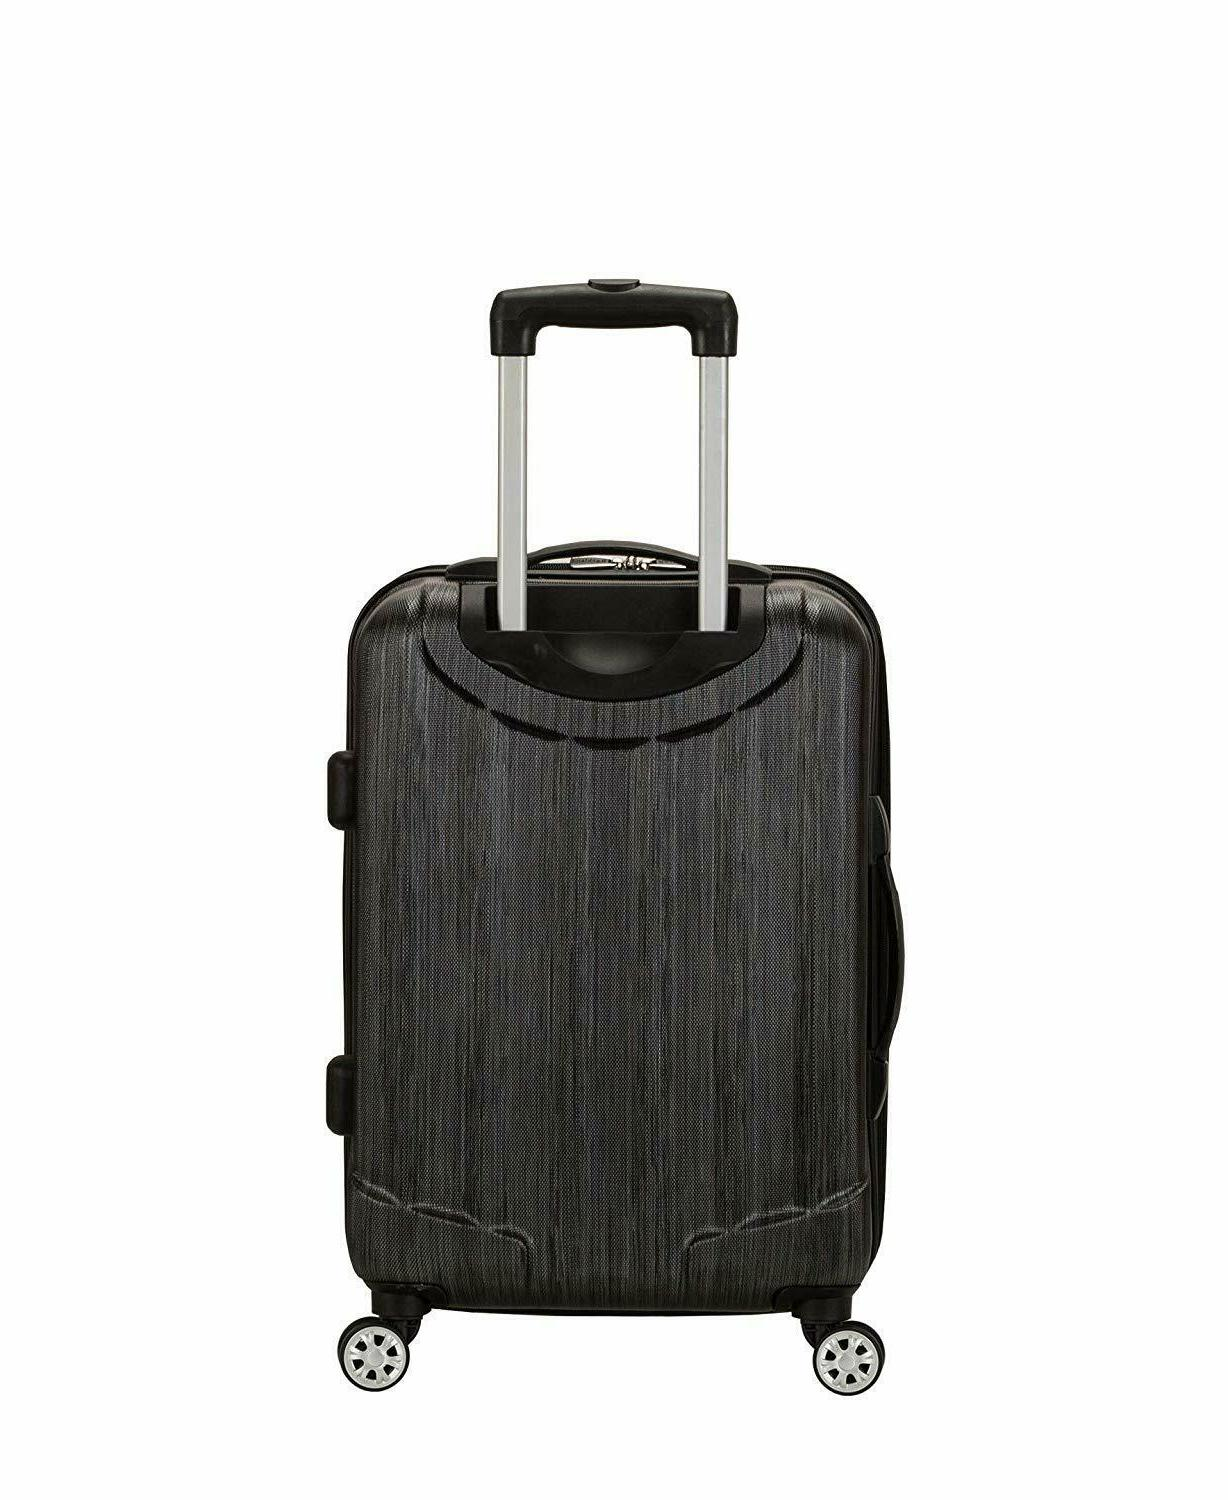 Rockland Expandable ABS Luggage